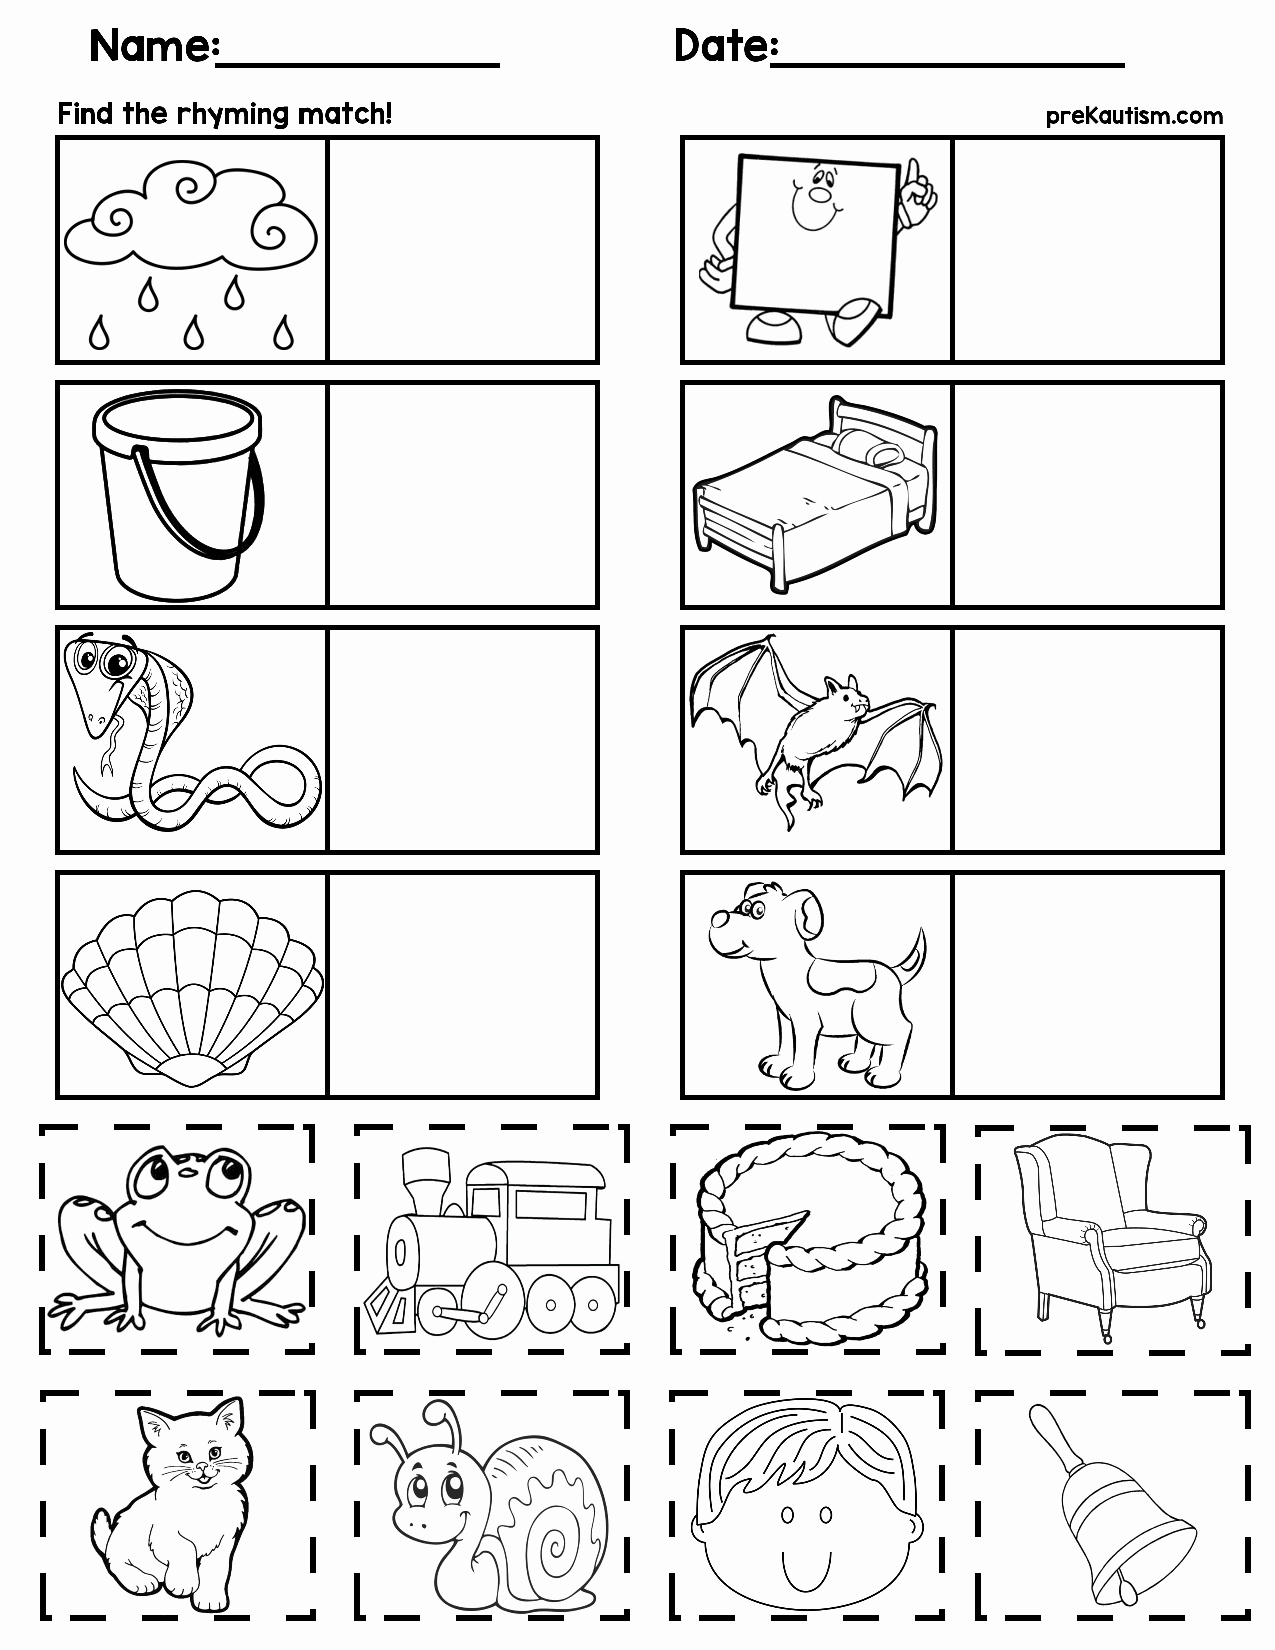 Rhyming Worksheets for Preschoolers Best Of Free Printable Preschool Rhyming Worksheets